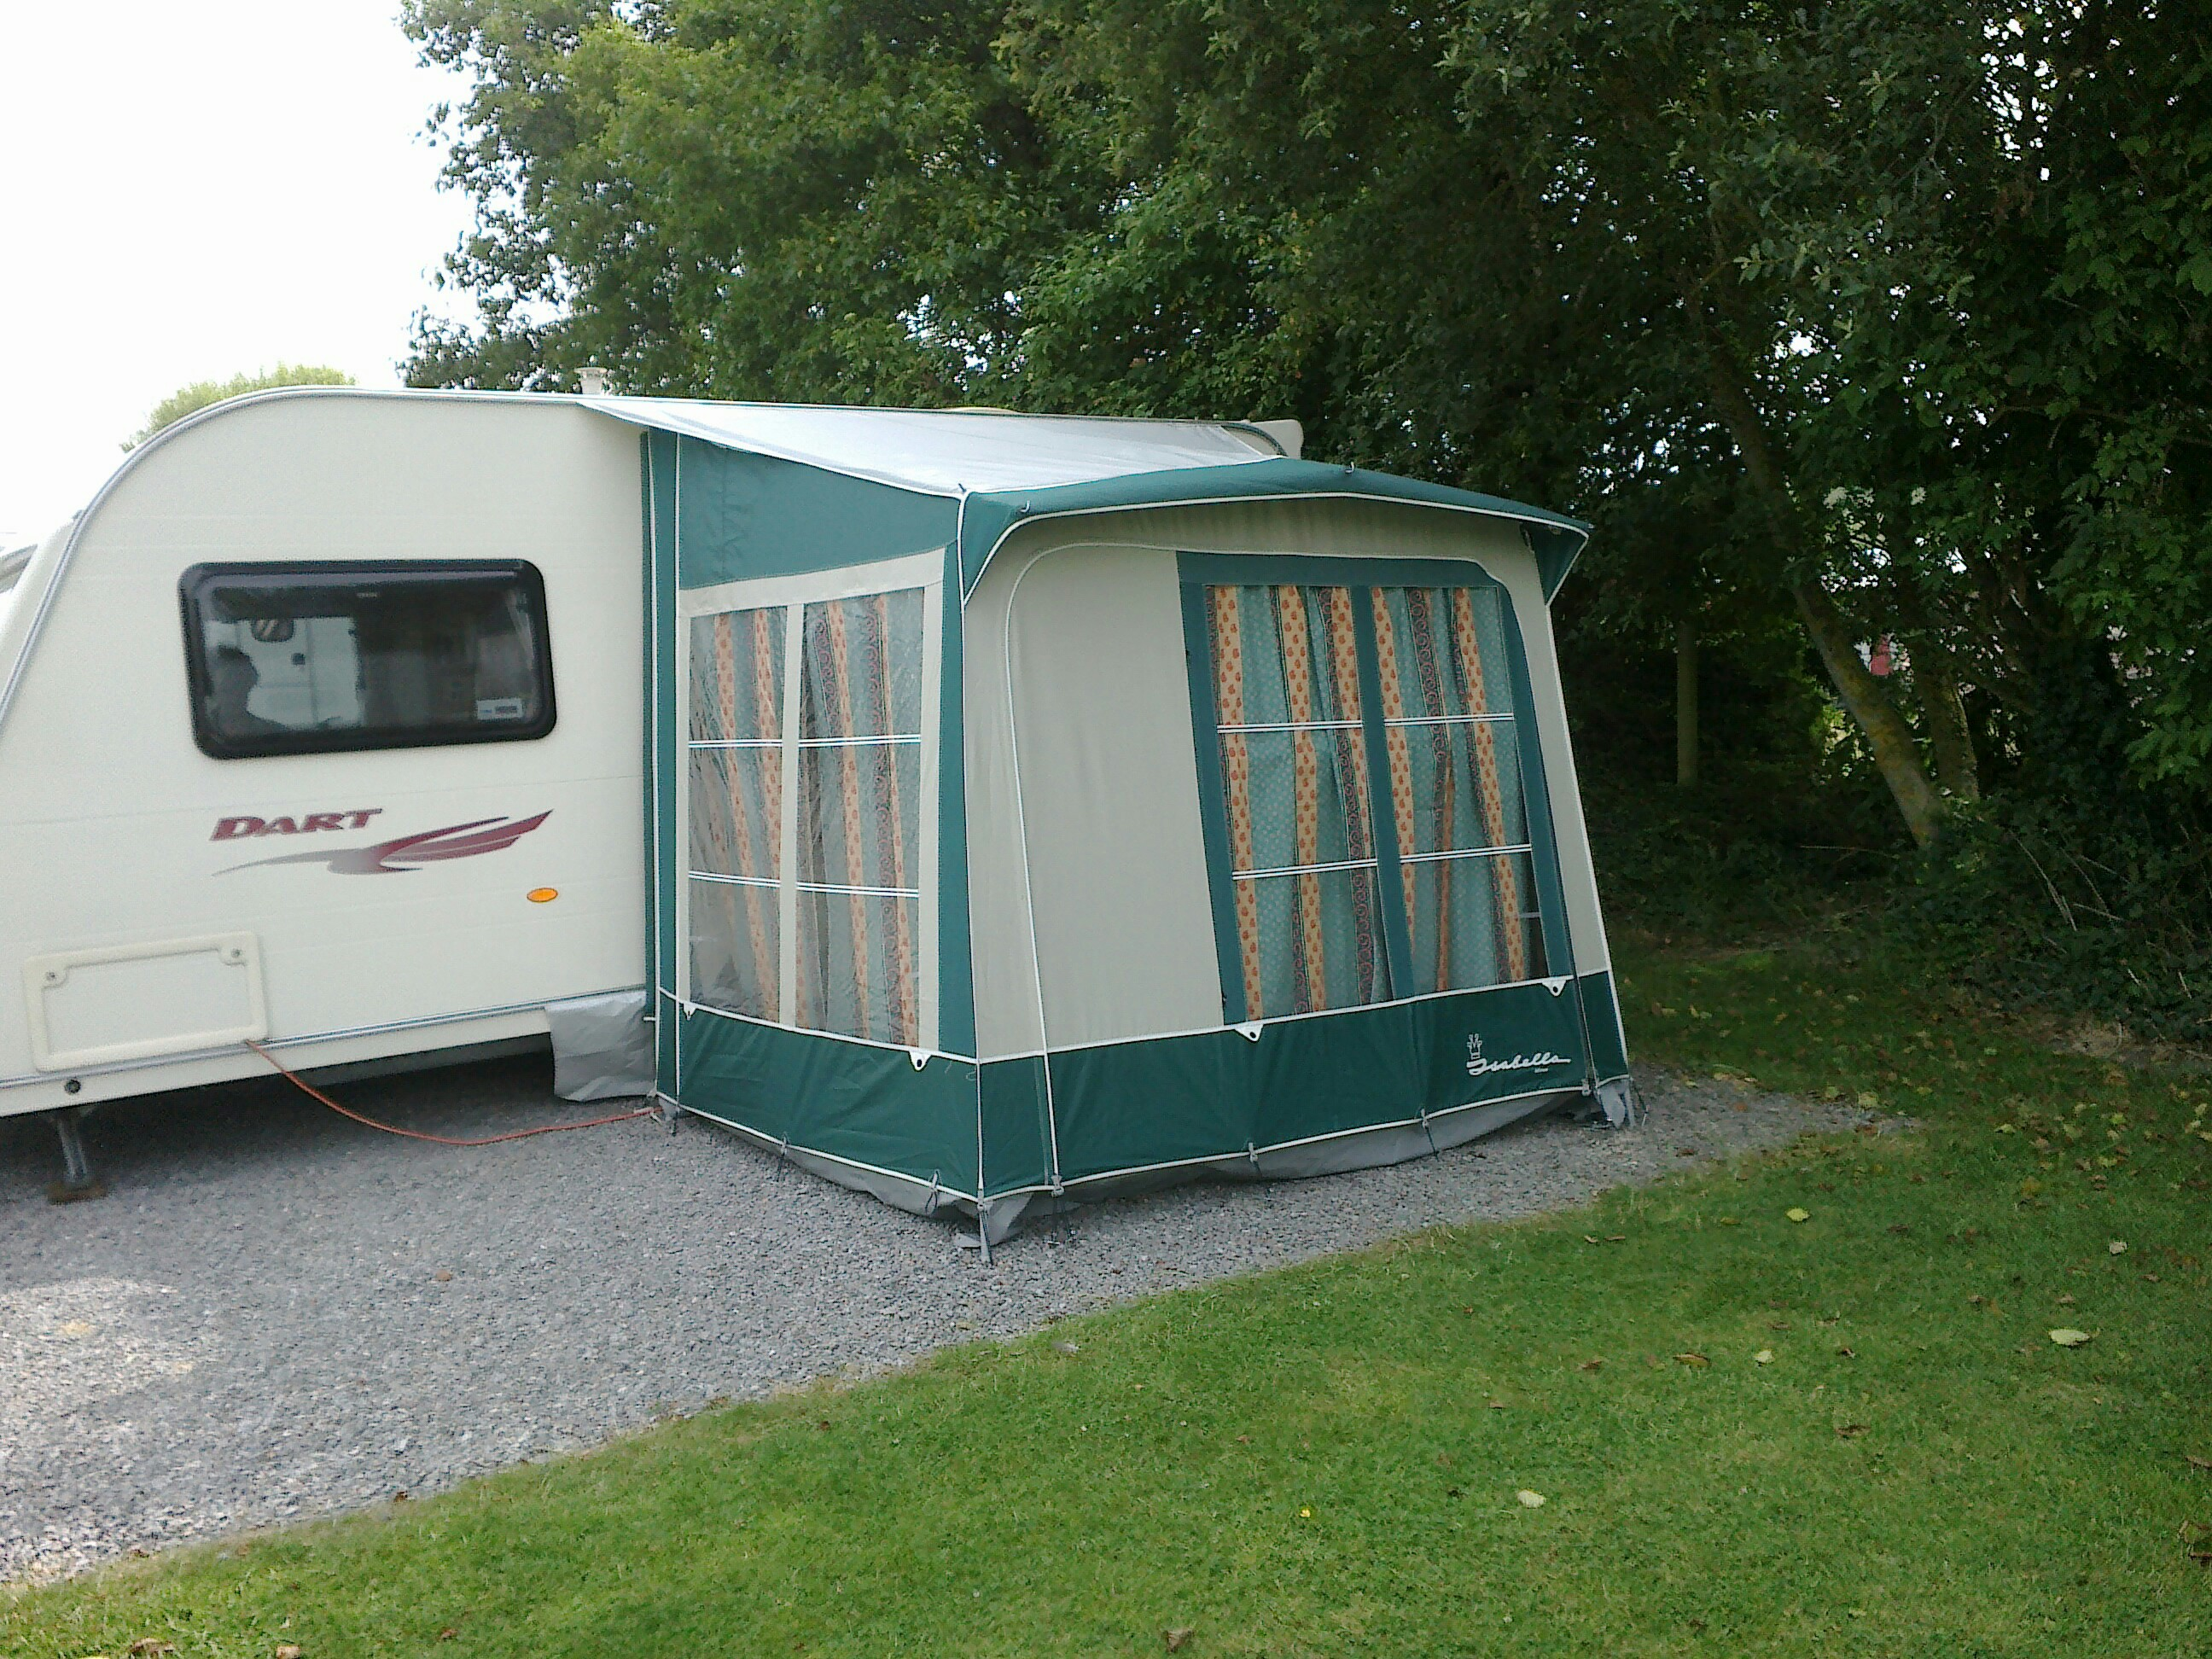 Isabella Minor Porch Awning for sale in UK | View 9 ads